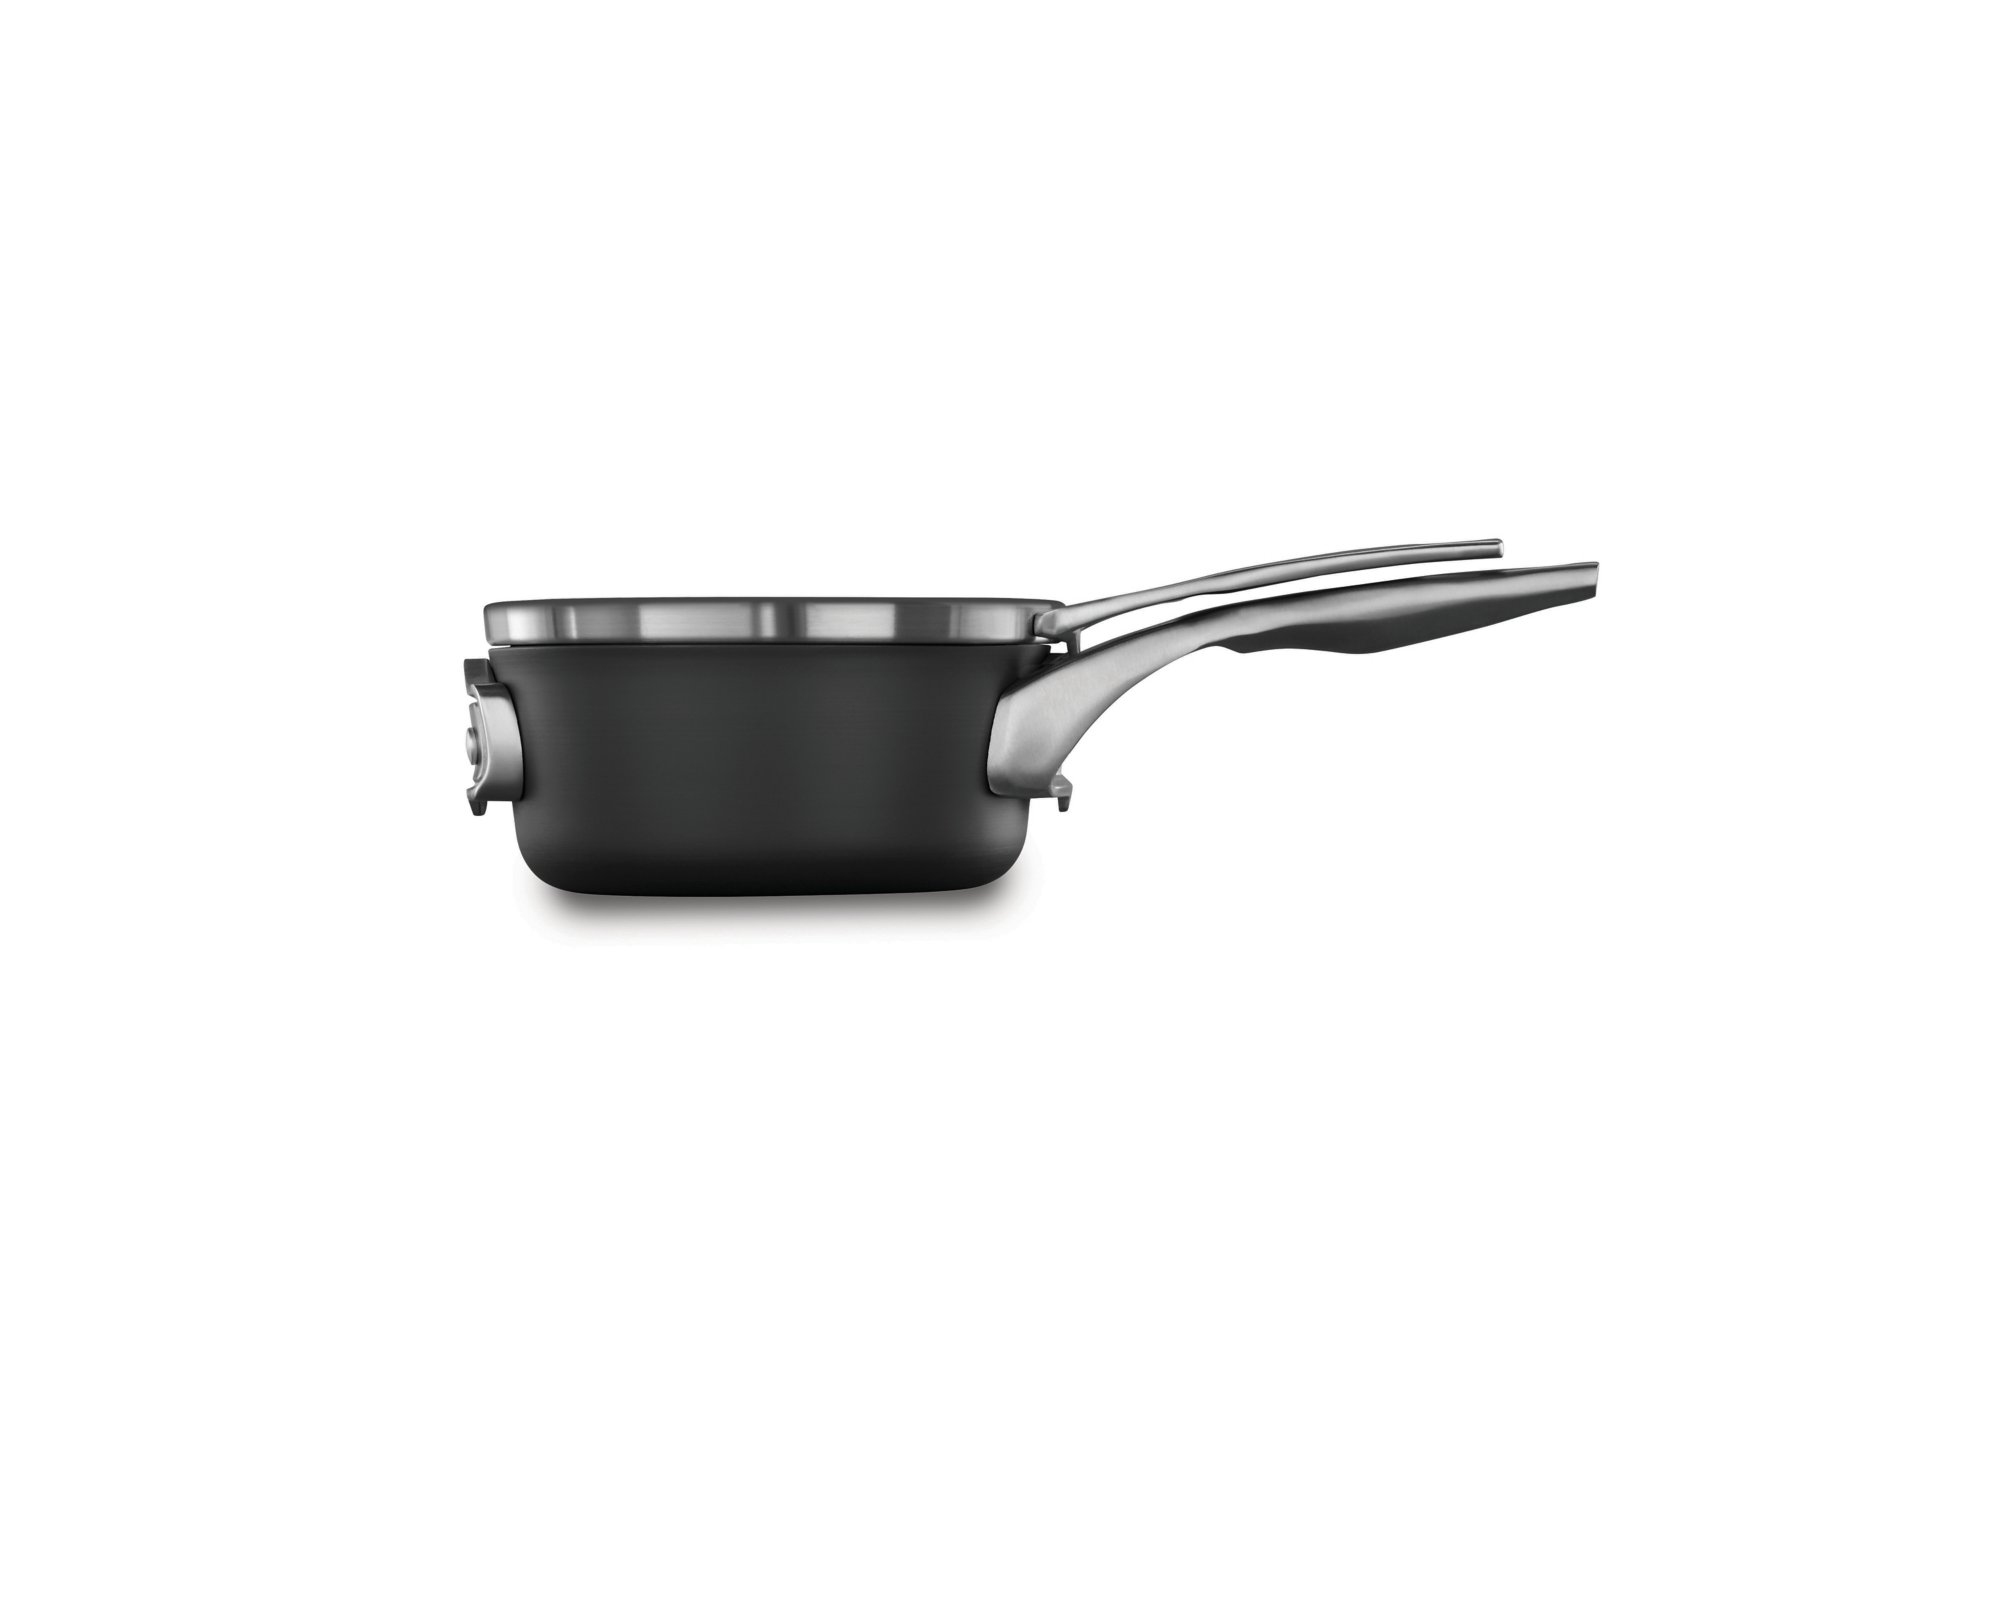 Calphalon Premier Space-Saving Hard-Anodized Nonstick Cookware, 1.5-Quart Saucepan with Cover